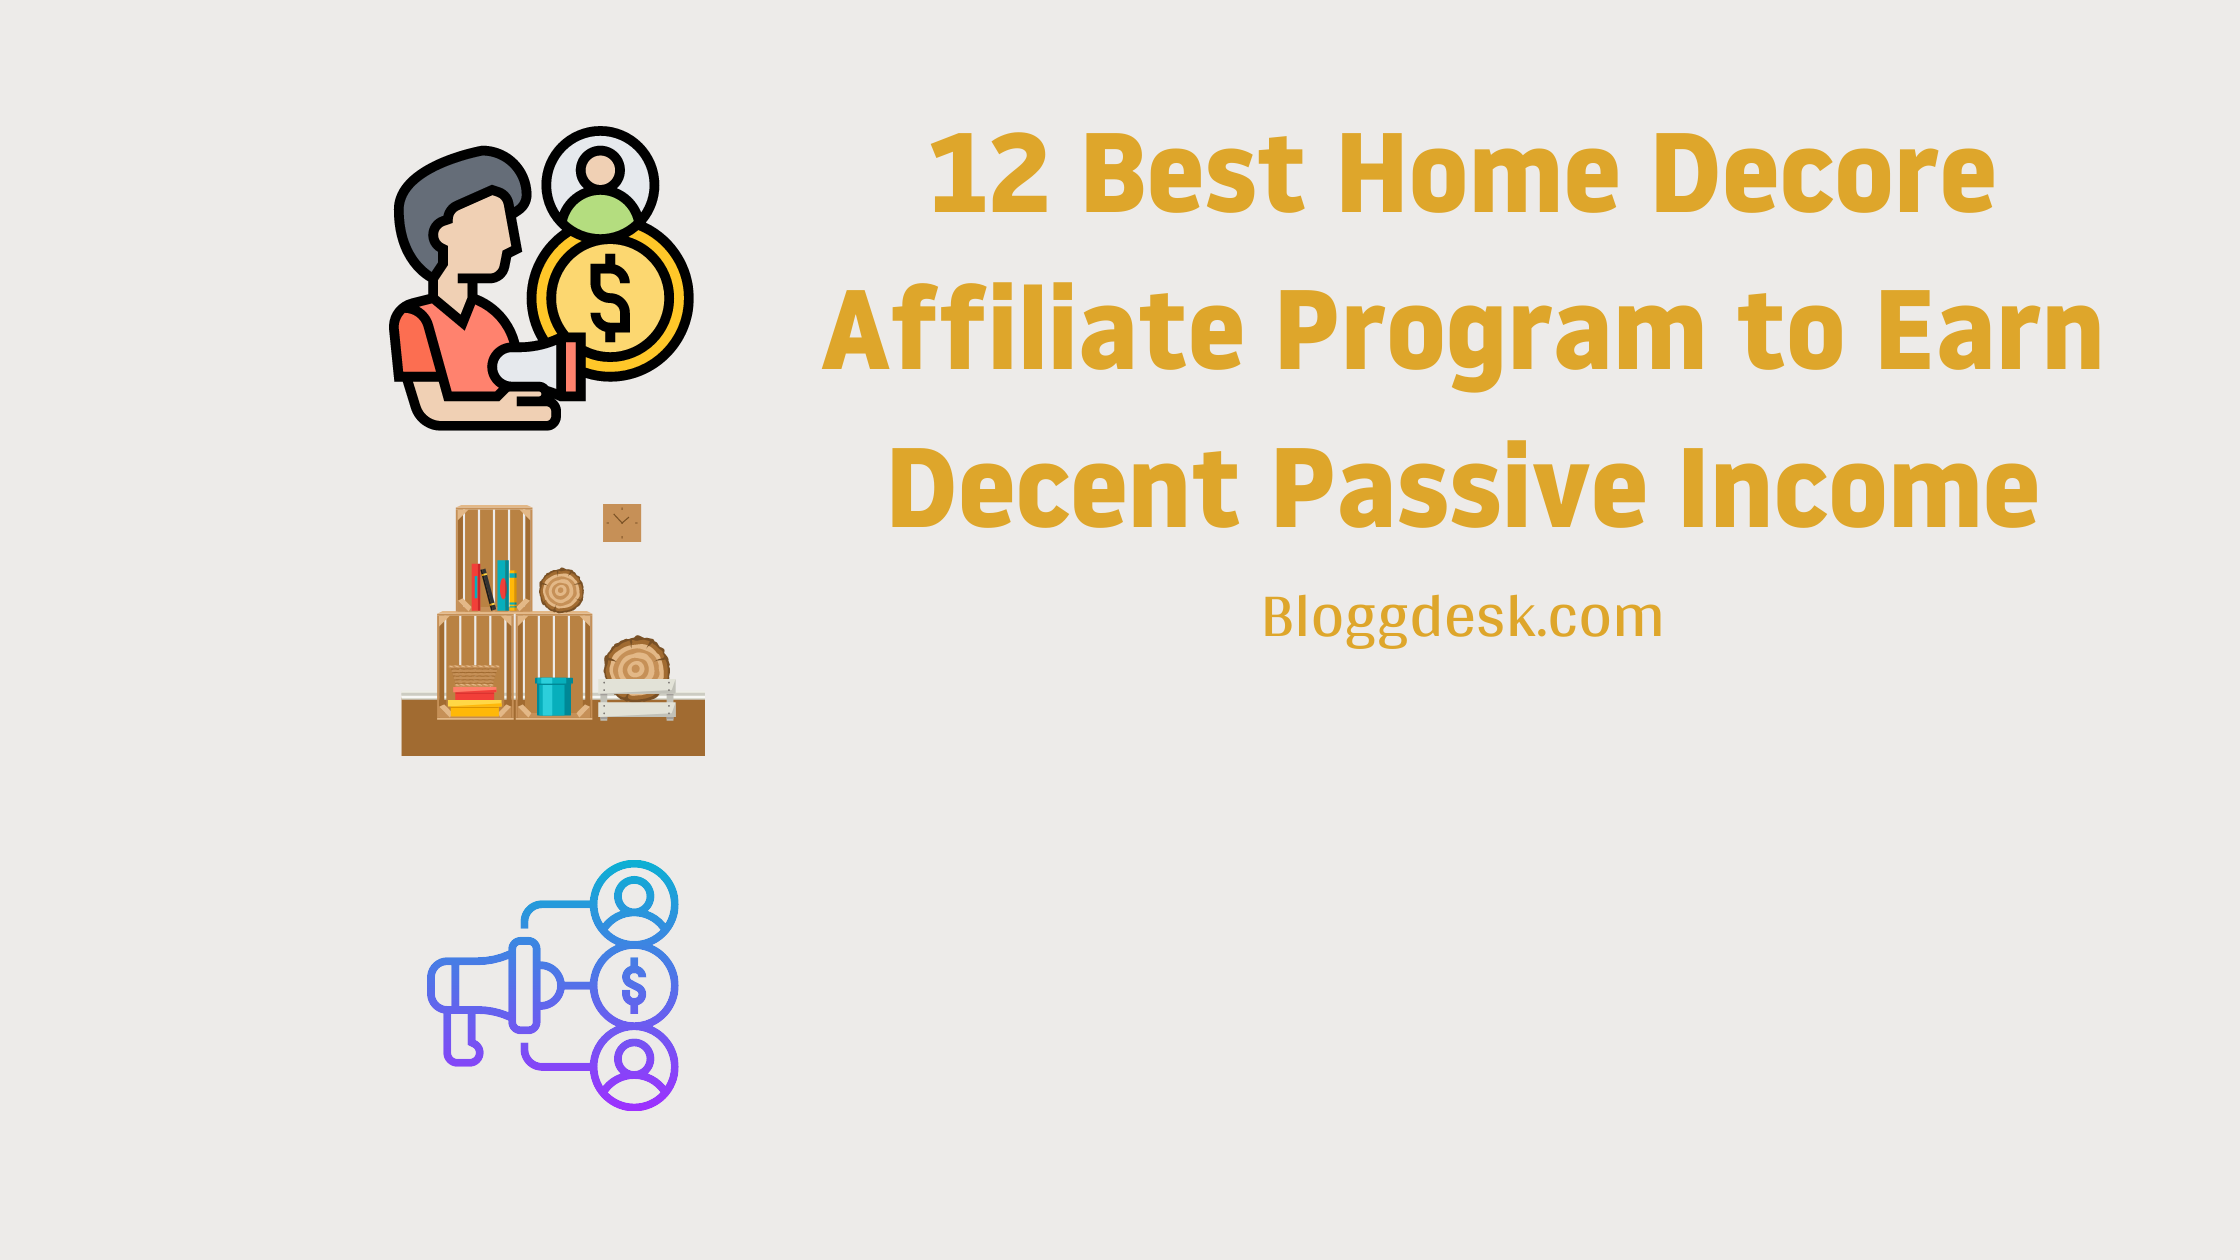 12 Best Home Decor Affiliate Program to Earn Decent Passive Income